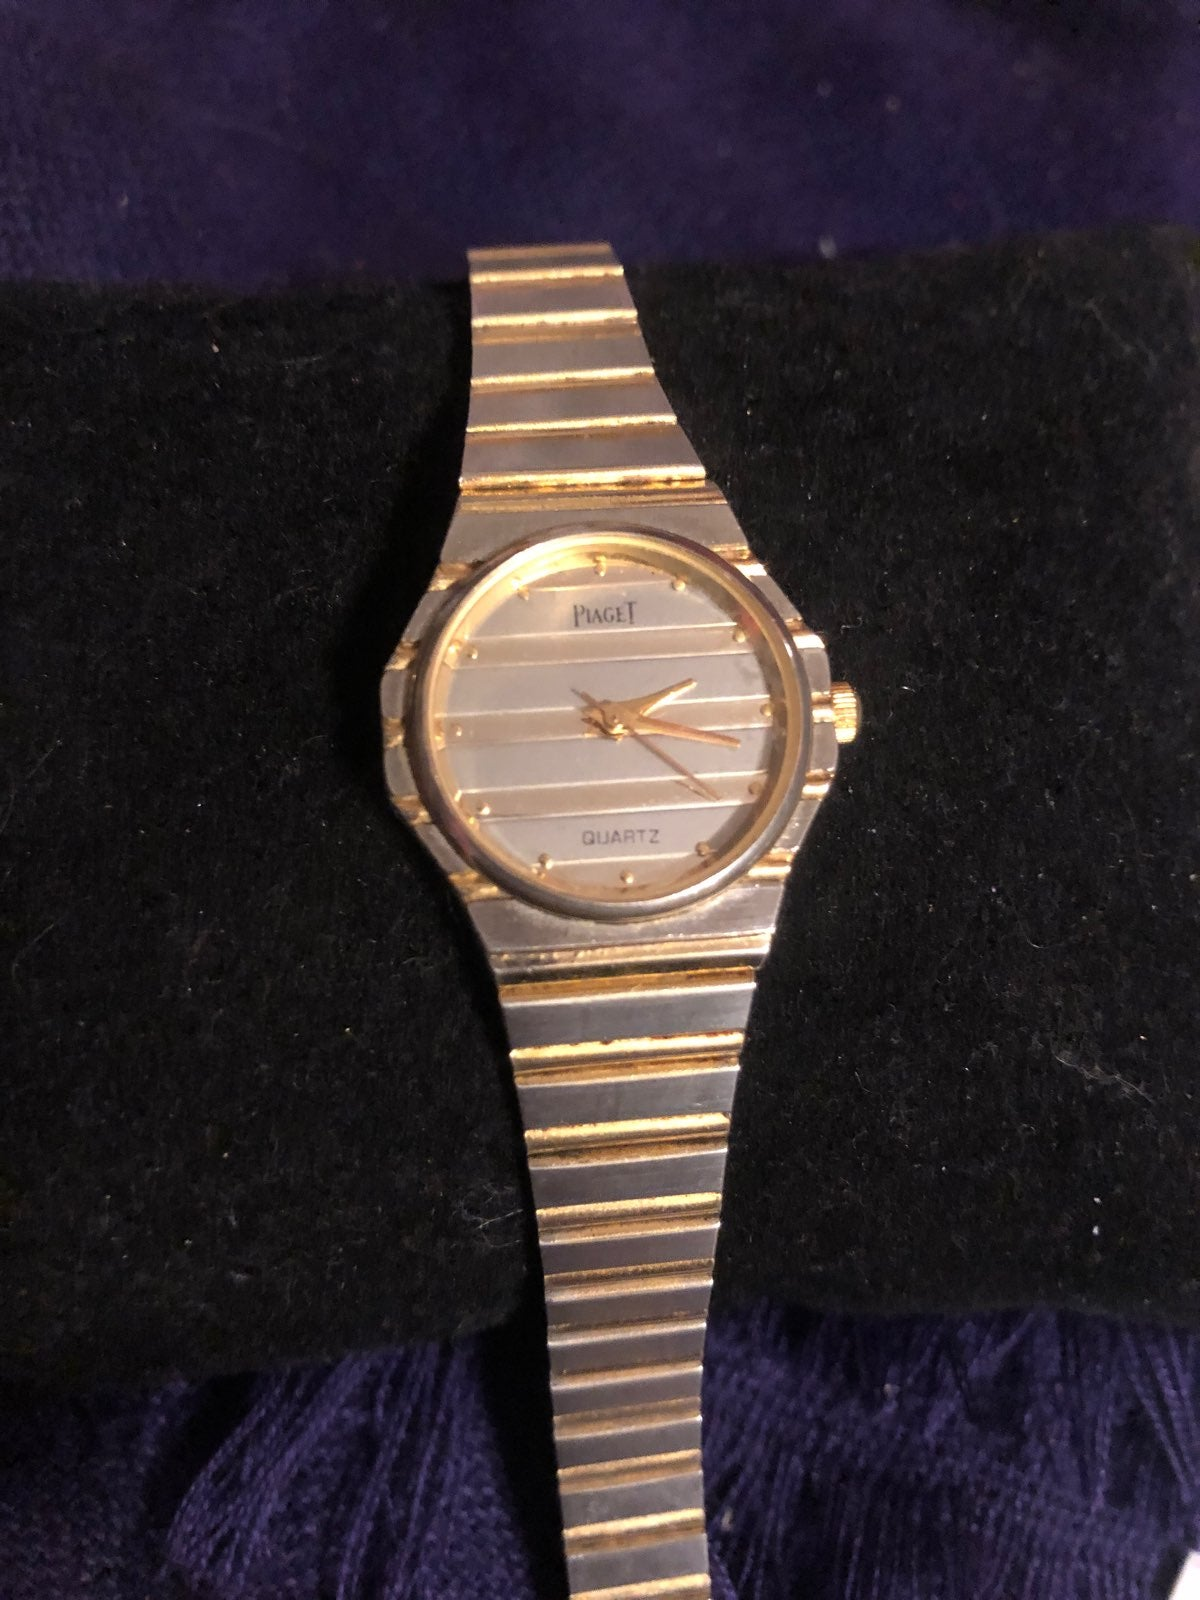 VTG  Silver&Gold Piaget Swiss Watch